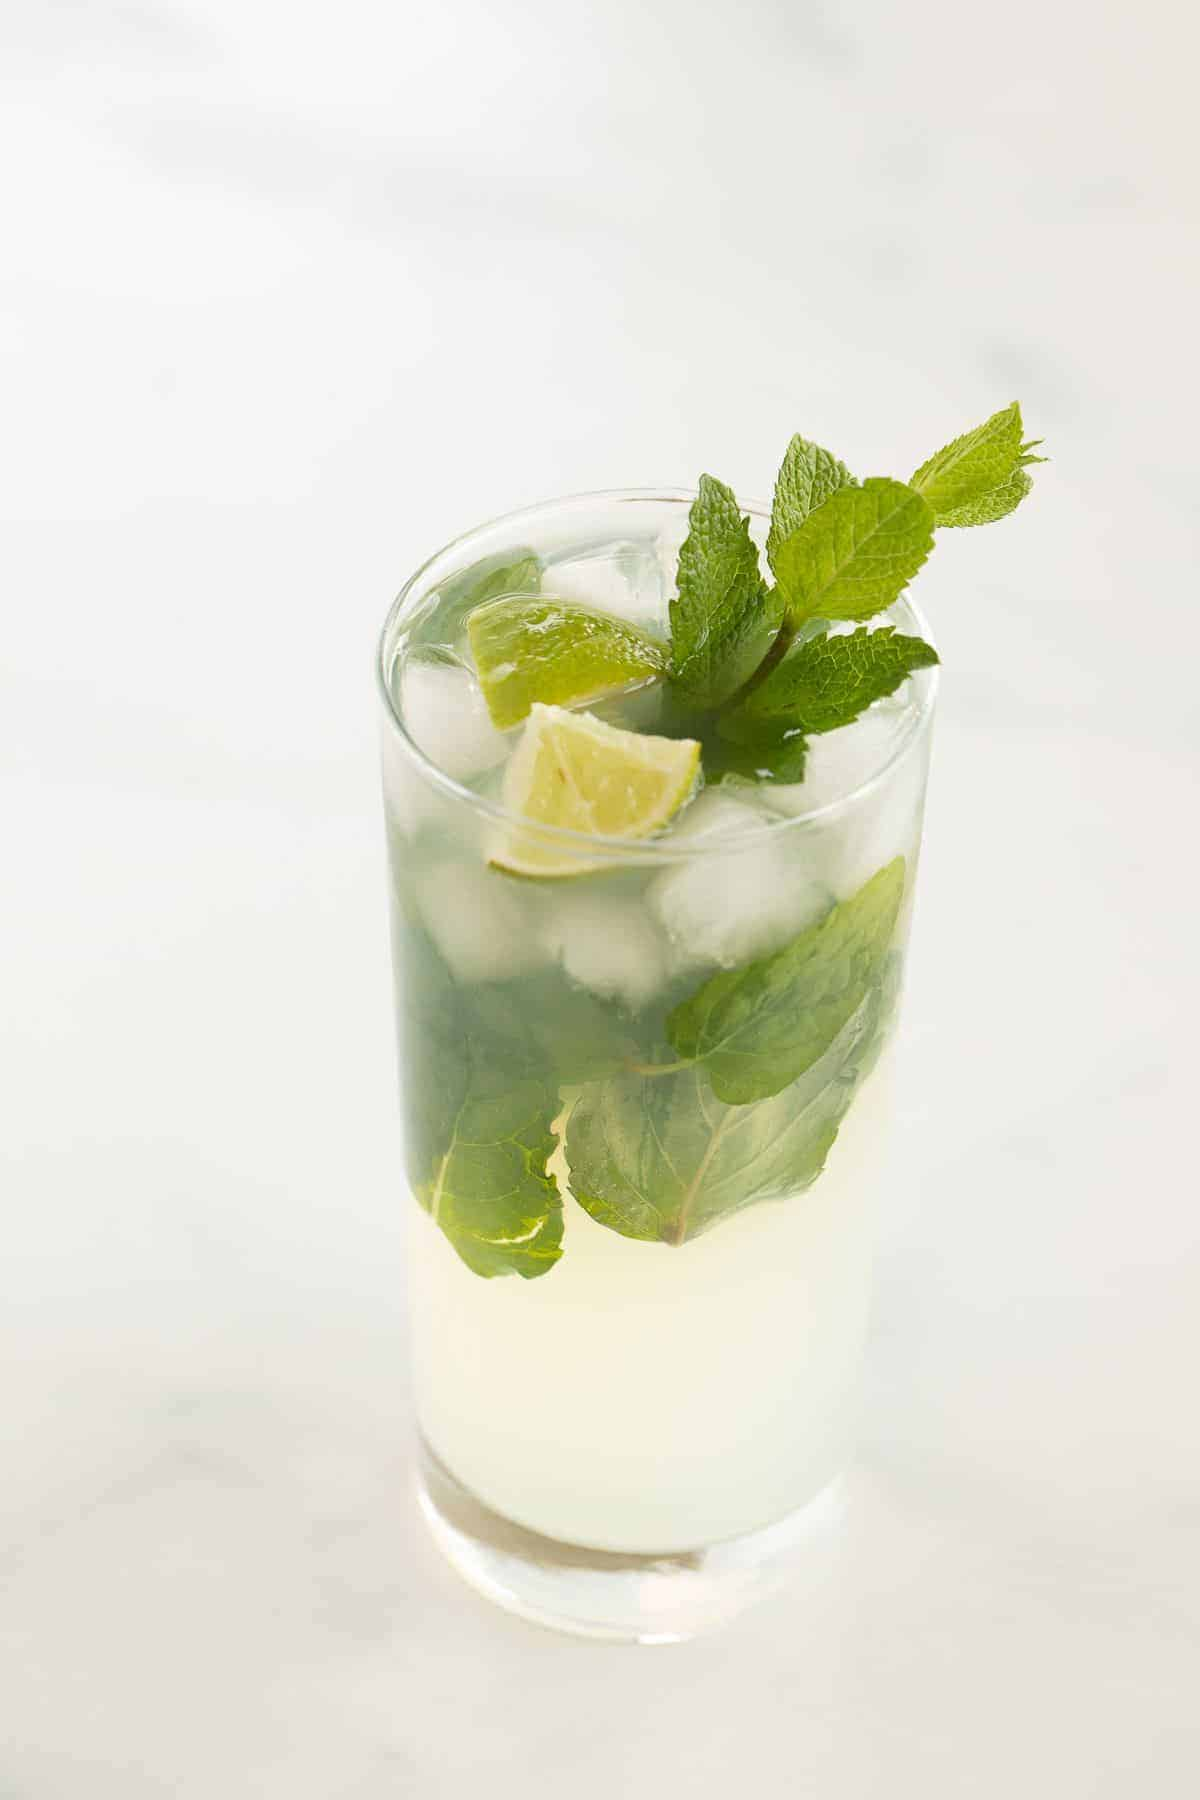 A tequila mojito in a clear glass on a white surface, garnished with wedges of lime and fresh mint.